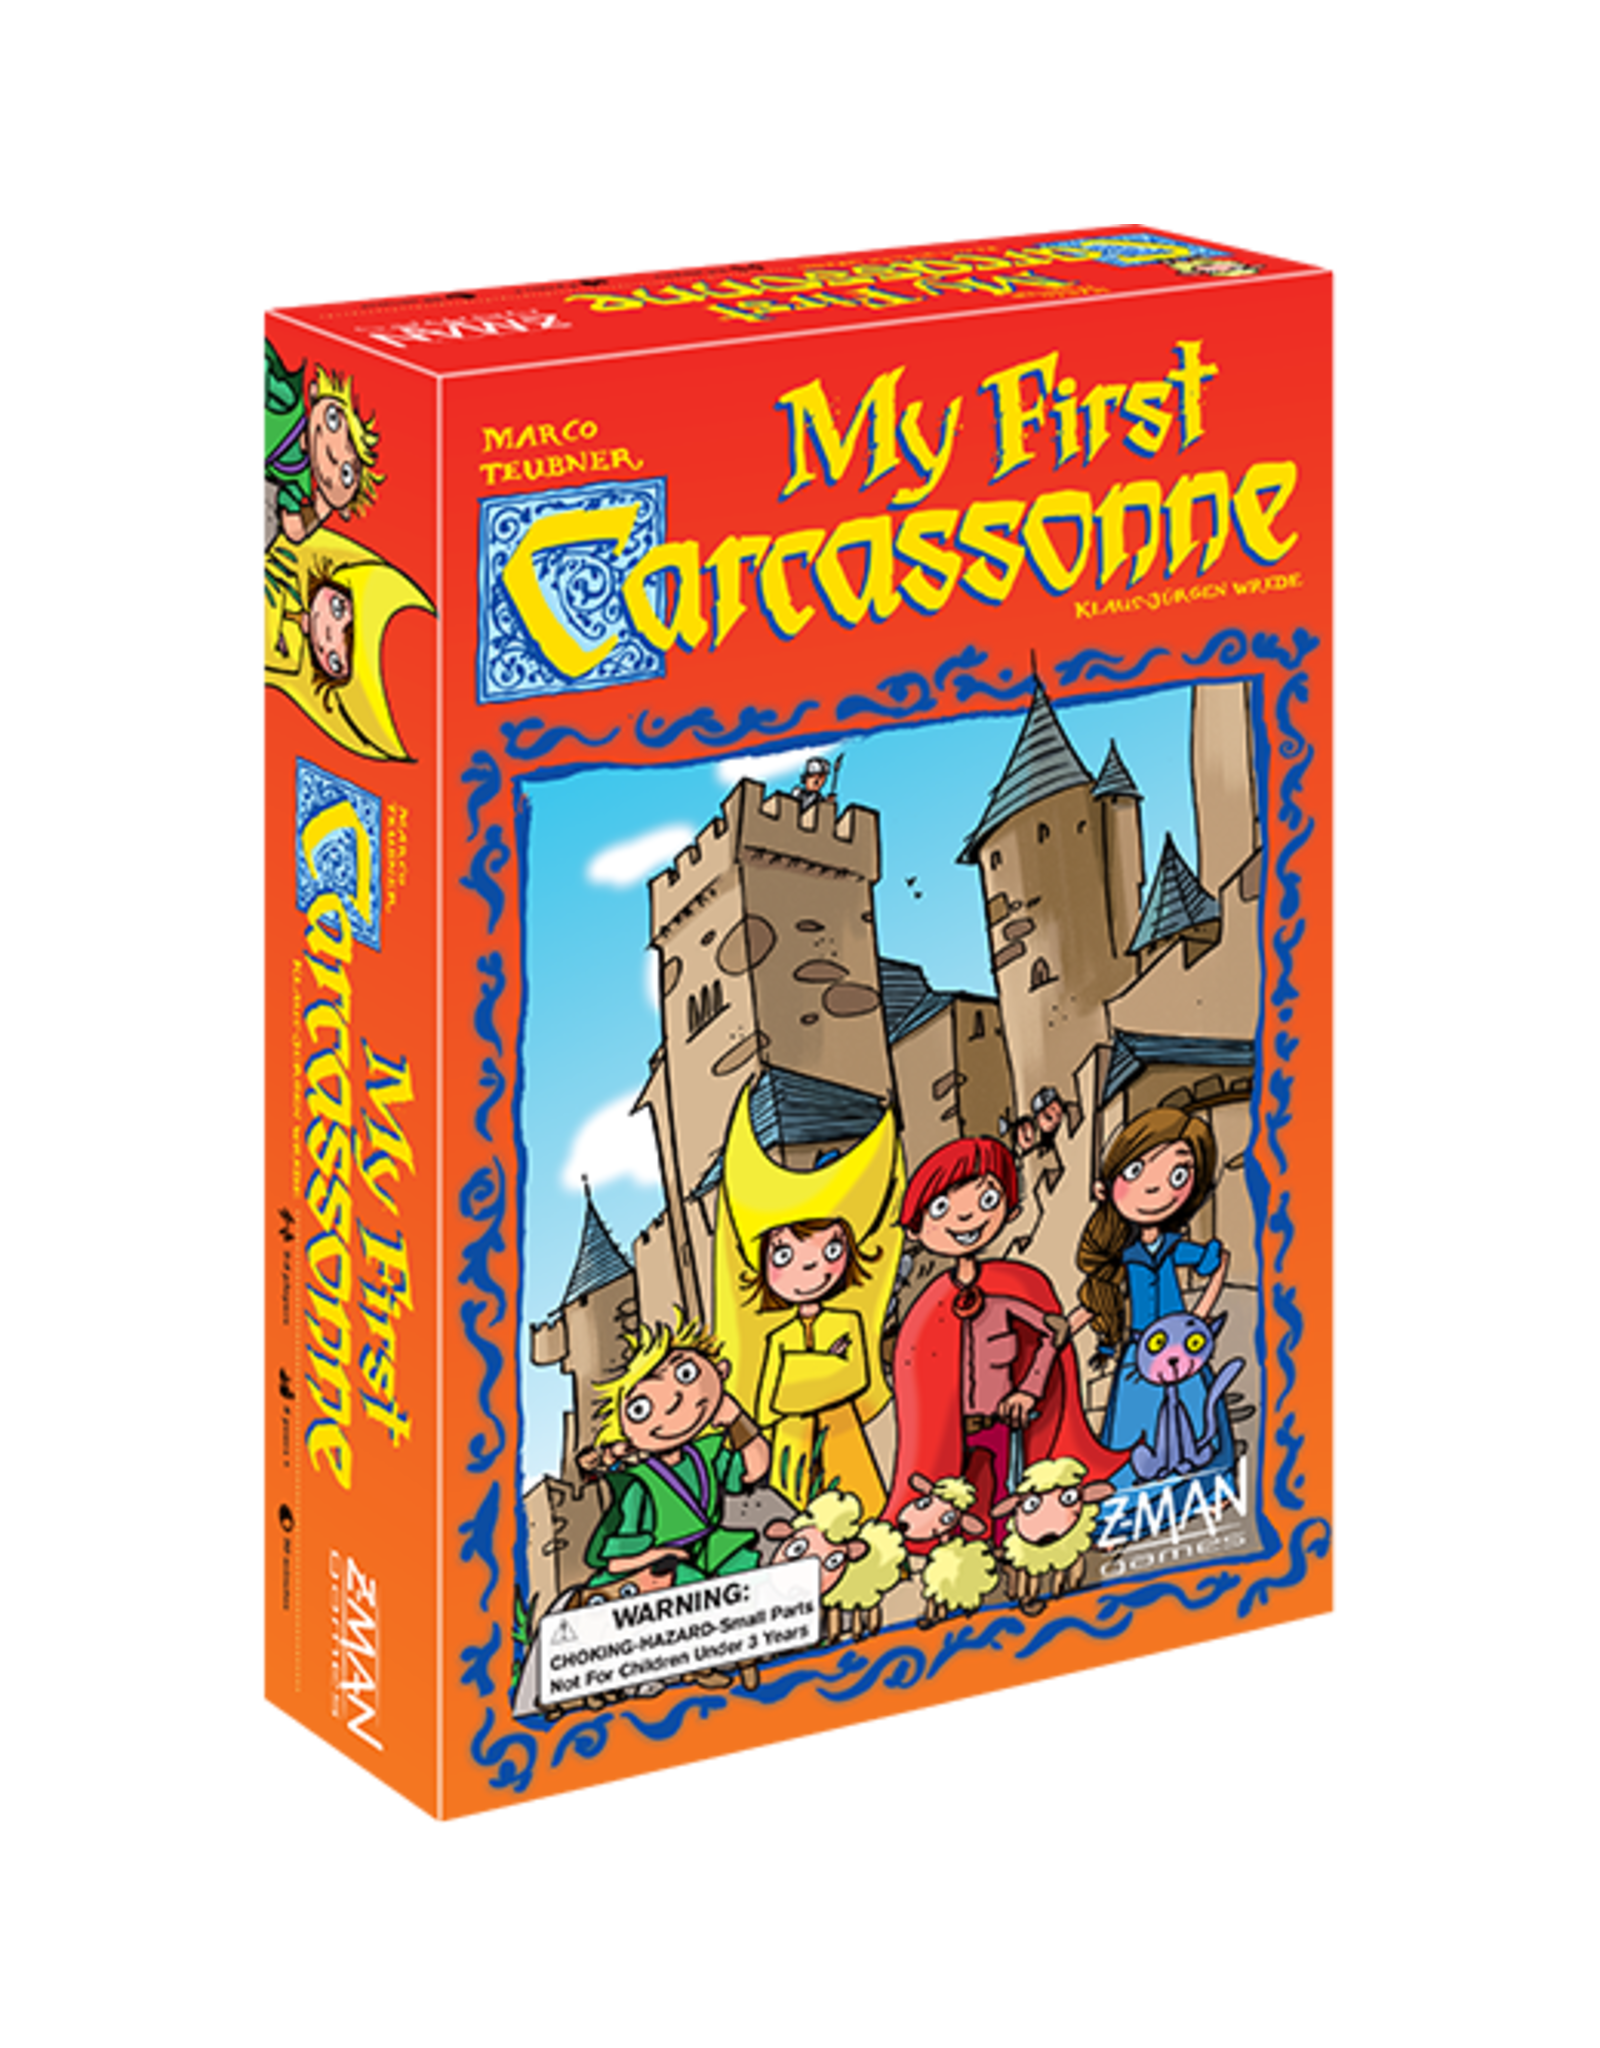 zman games My First Carcassonne